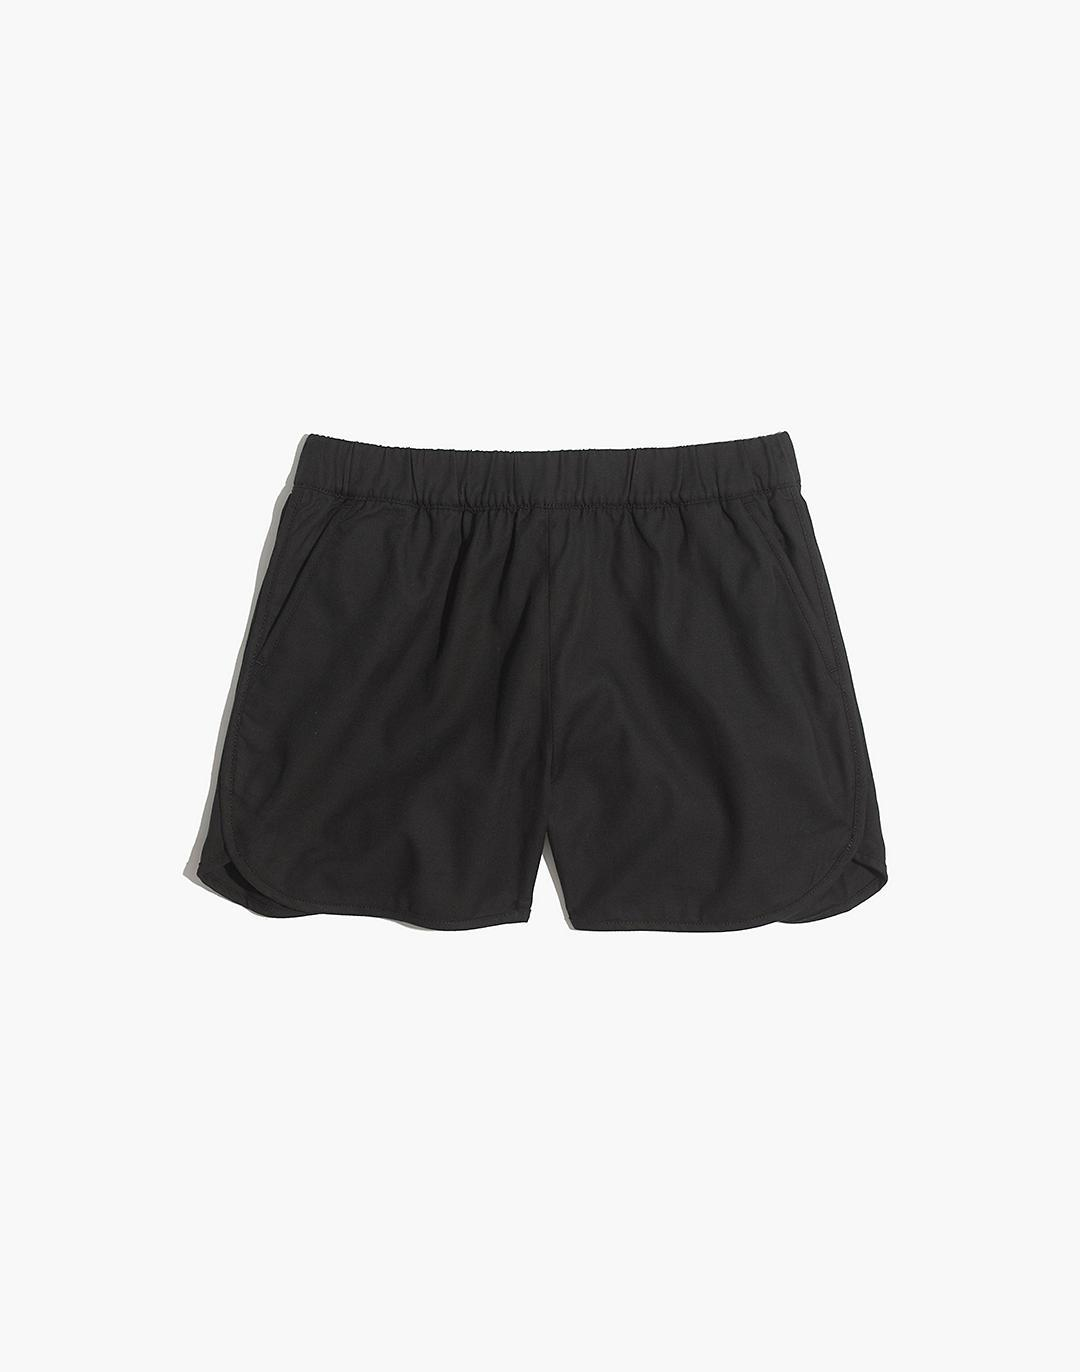 Plus Pull-On Shorts